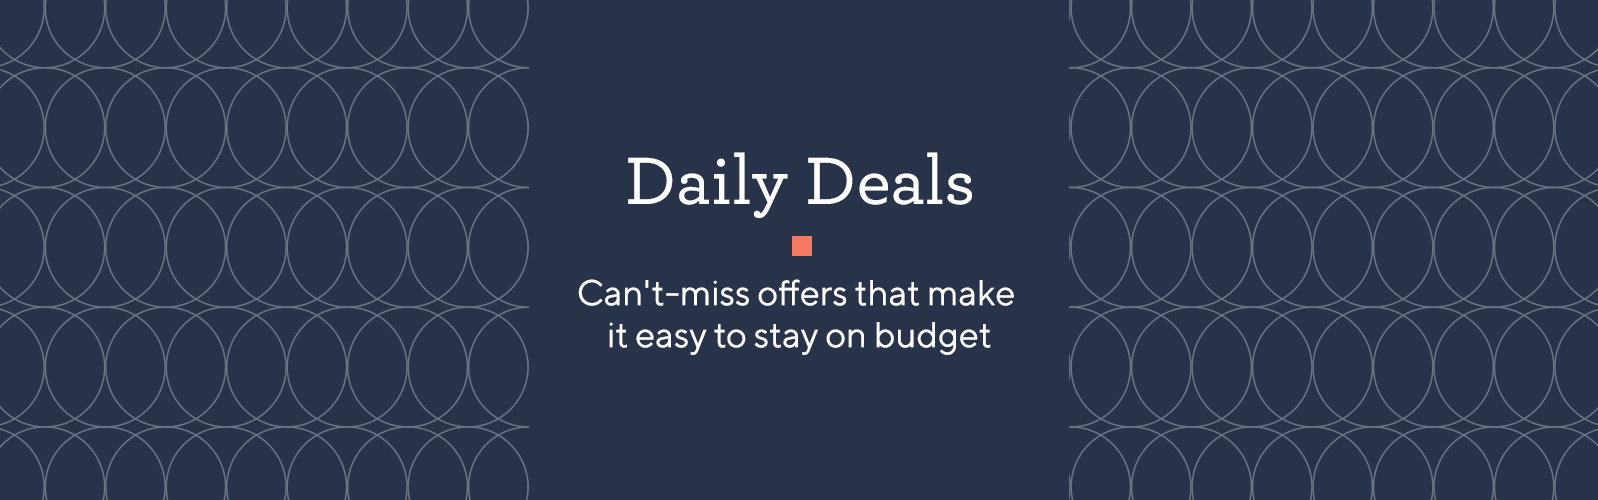 Daily Deals  Can't-miss offers that make it easy to stay on budget